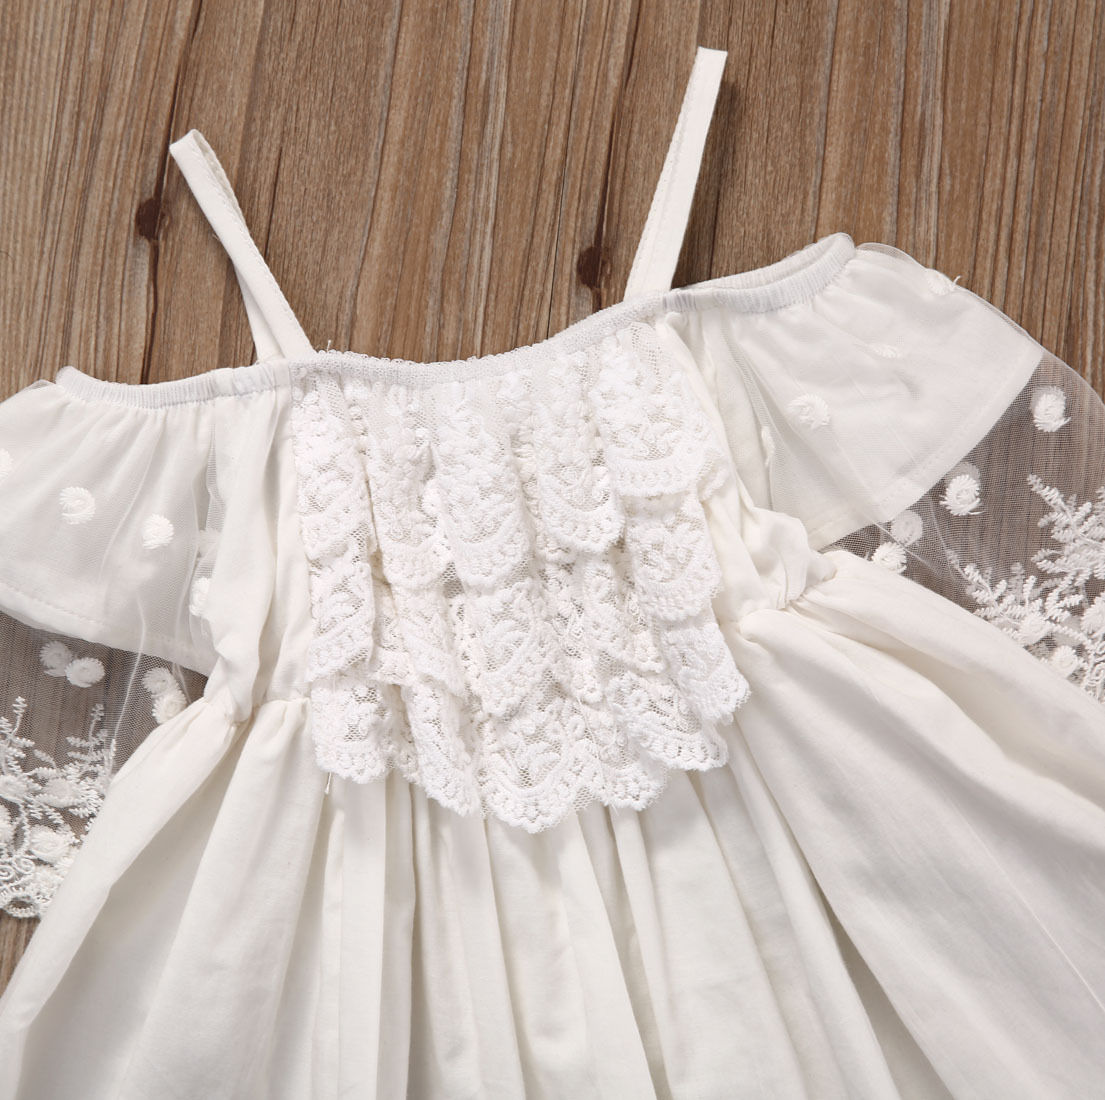 Lace girl clothing princess dress kid baby party wedding for Cute white dresses for wedding